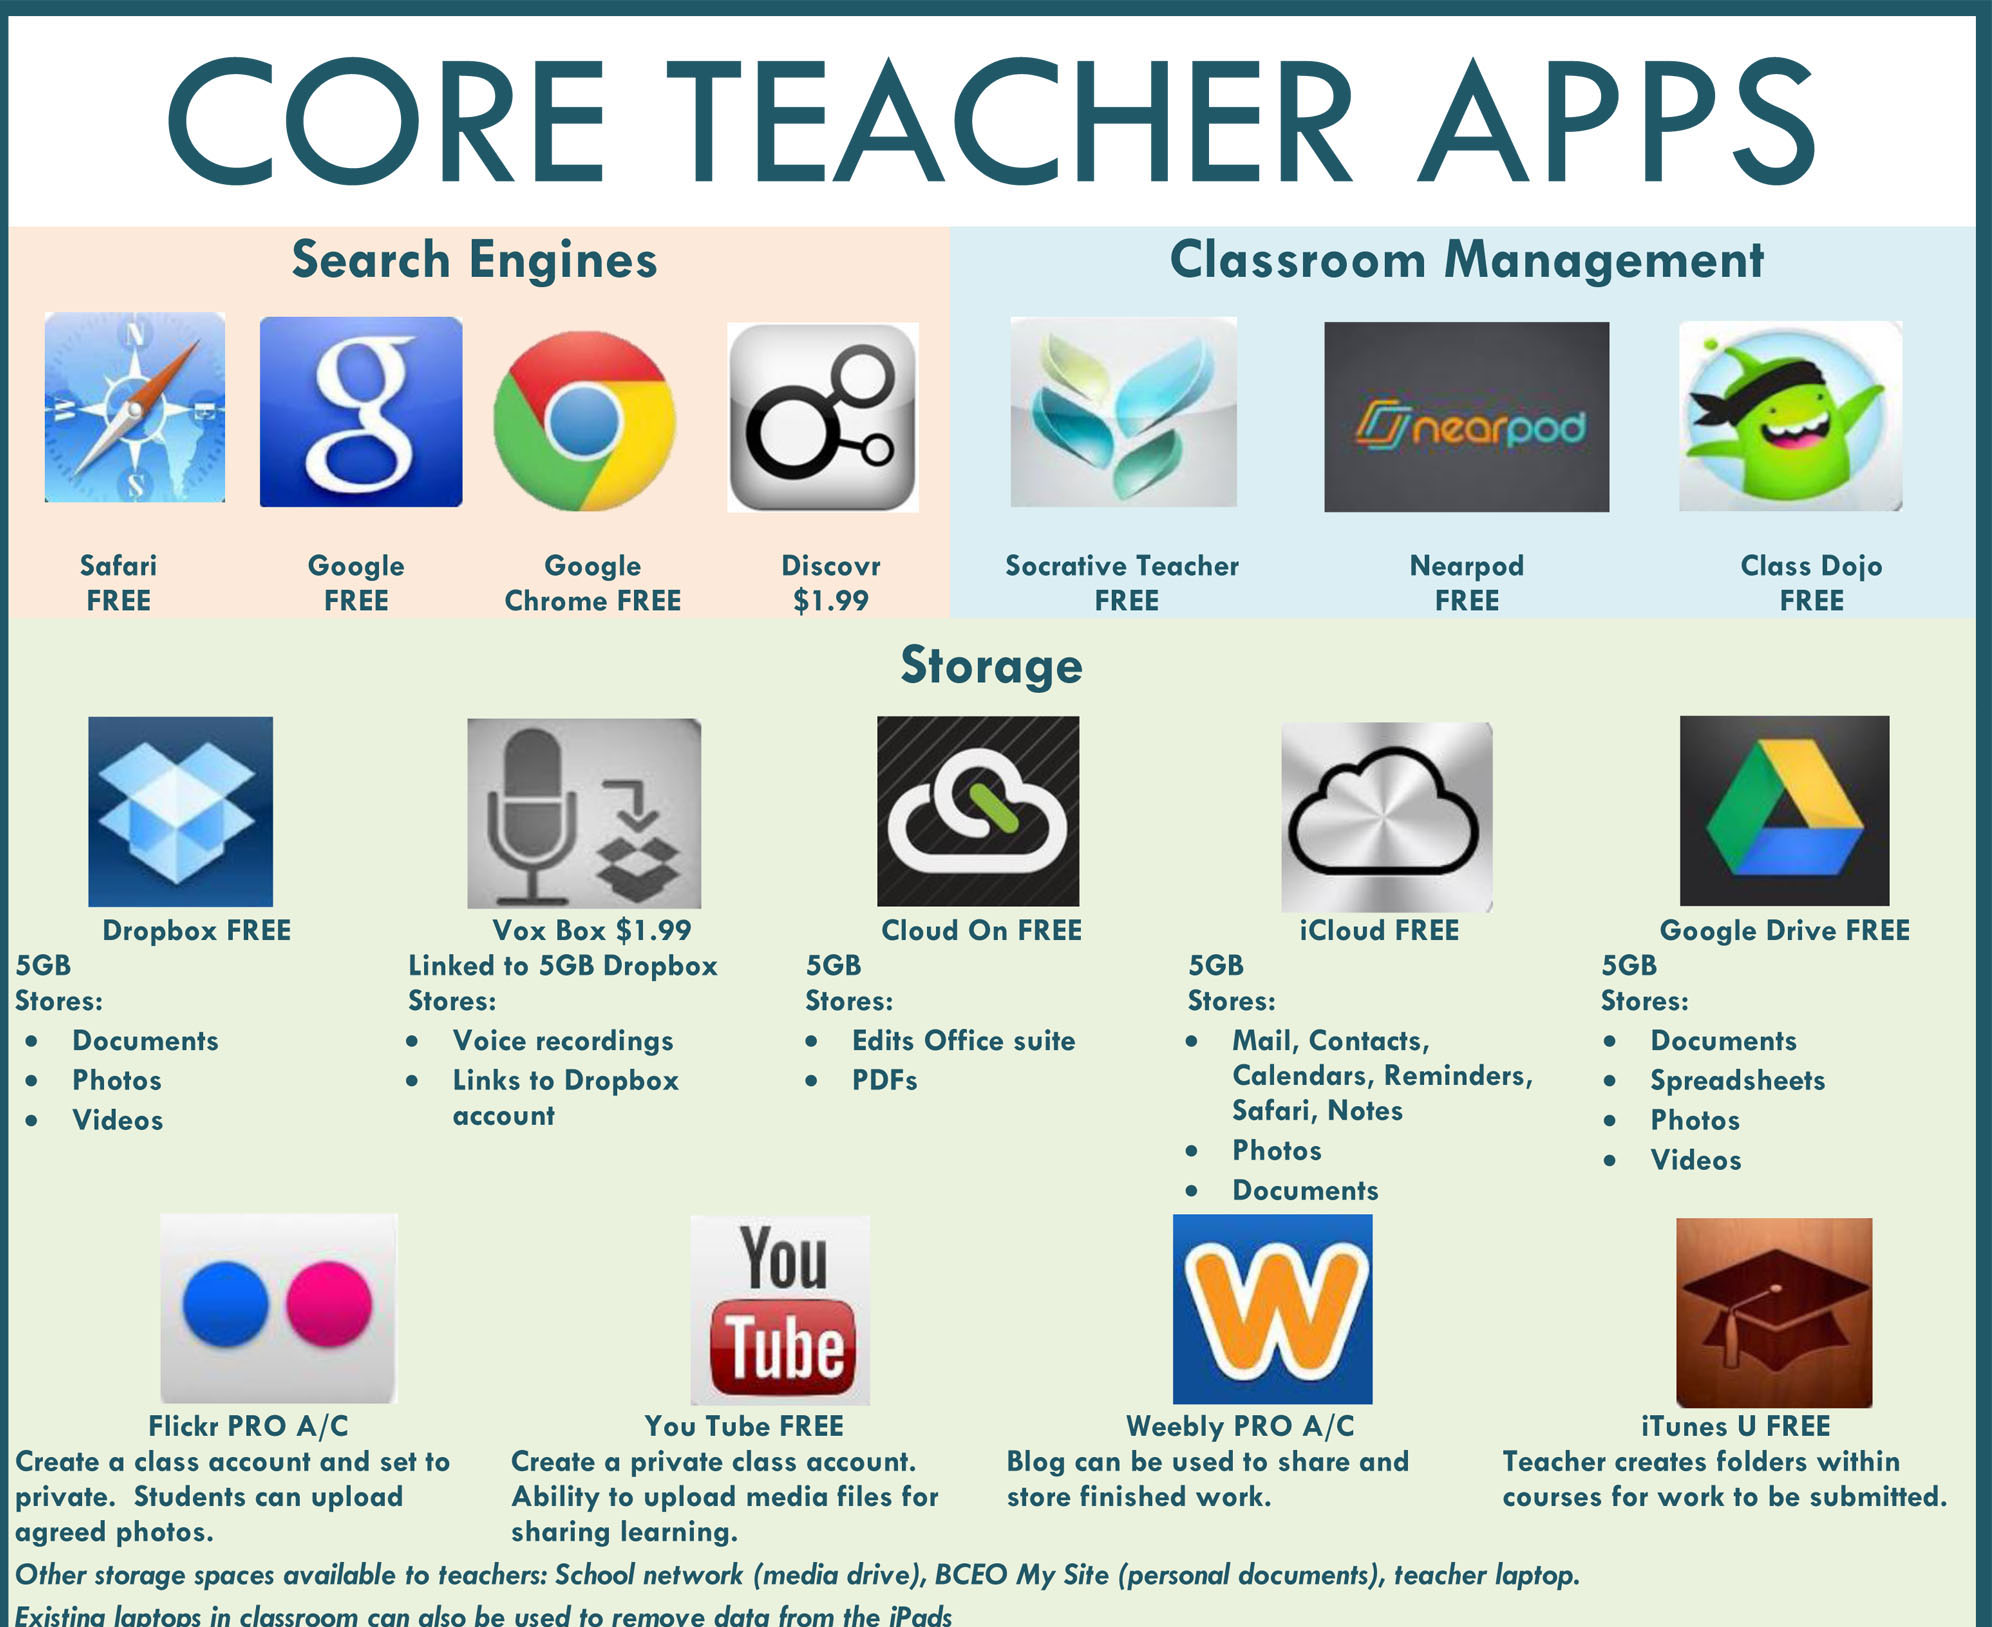 47 Core Teacher Apps: A Visual Library Of Apps For Teachers